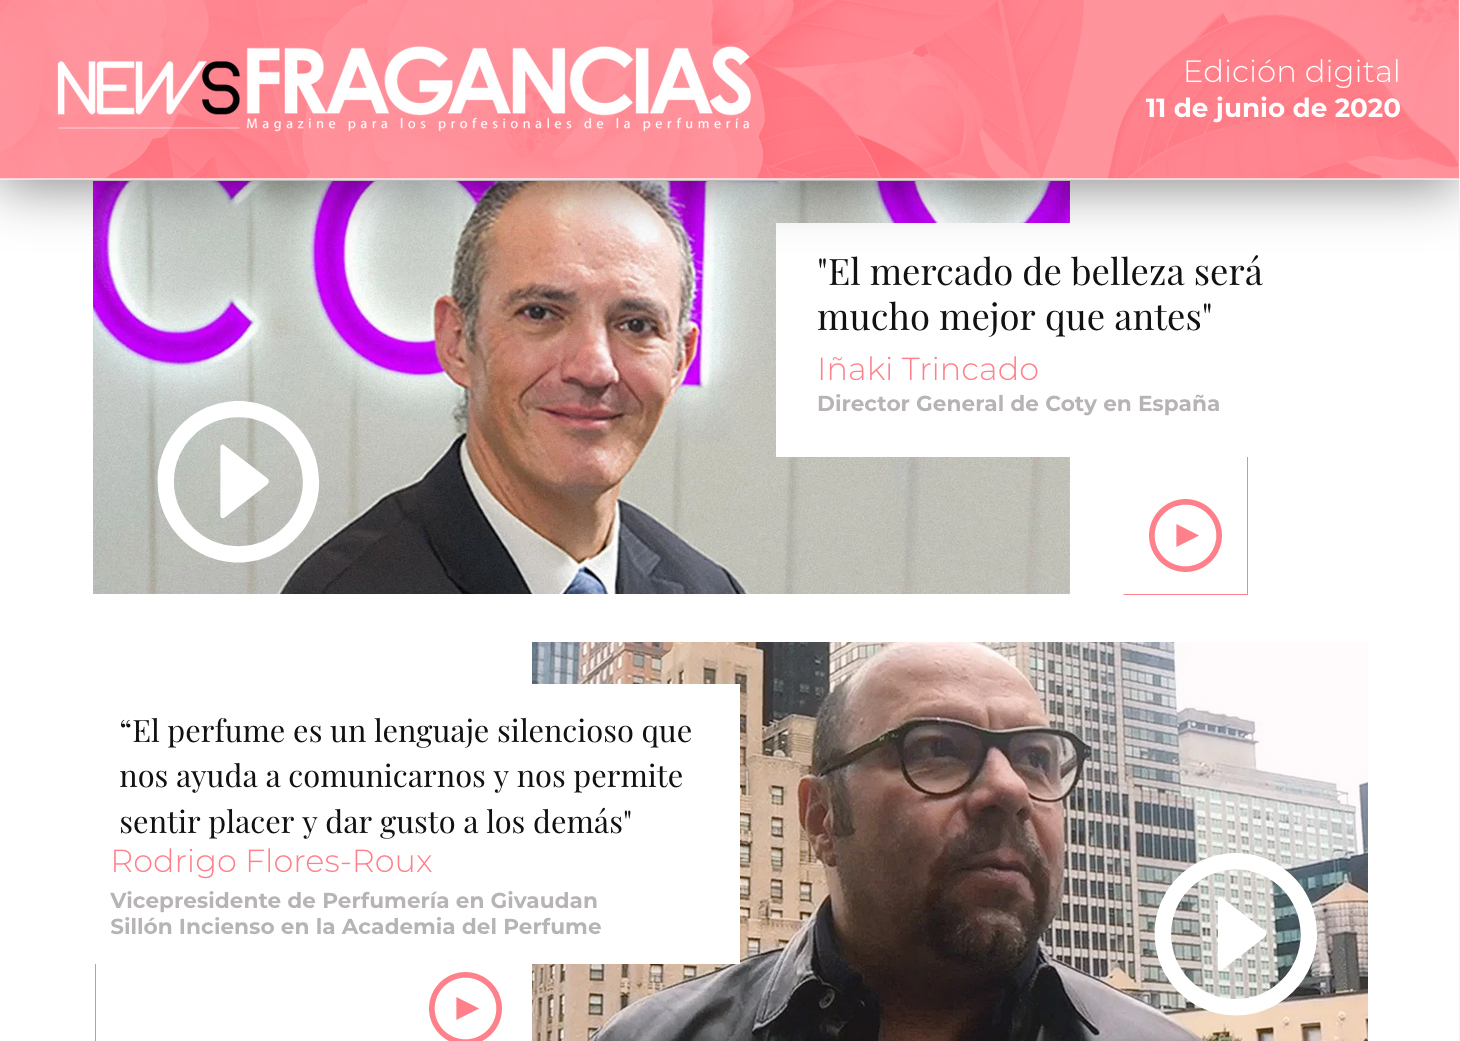 NewsFragancias Digital 4